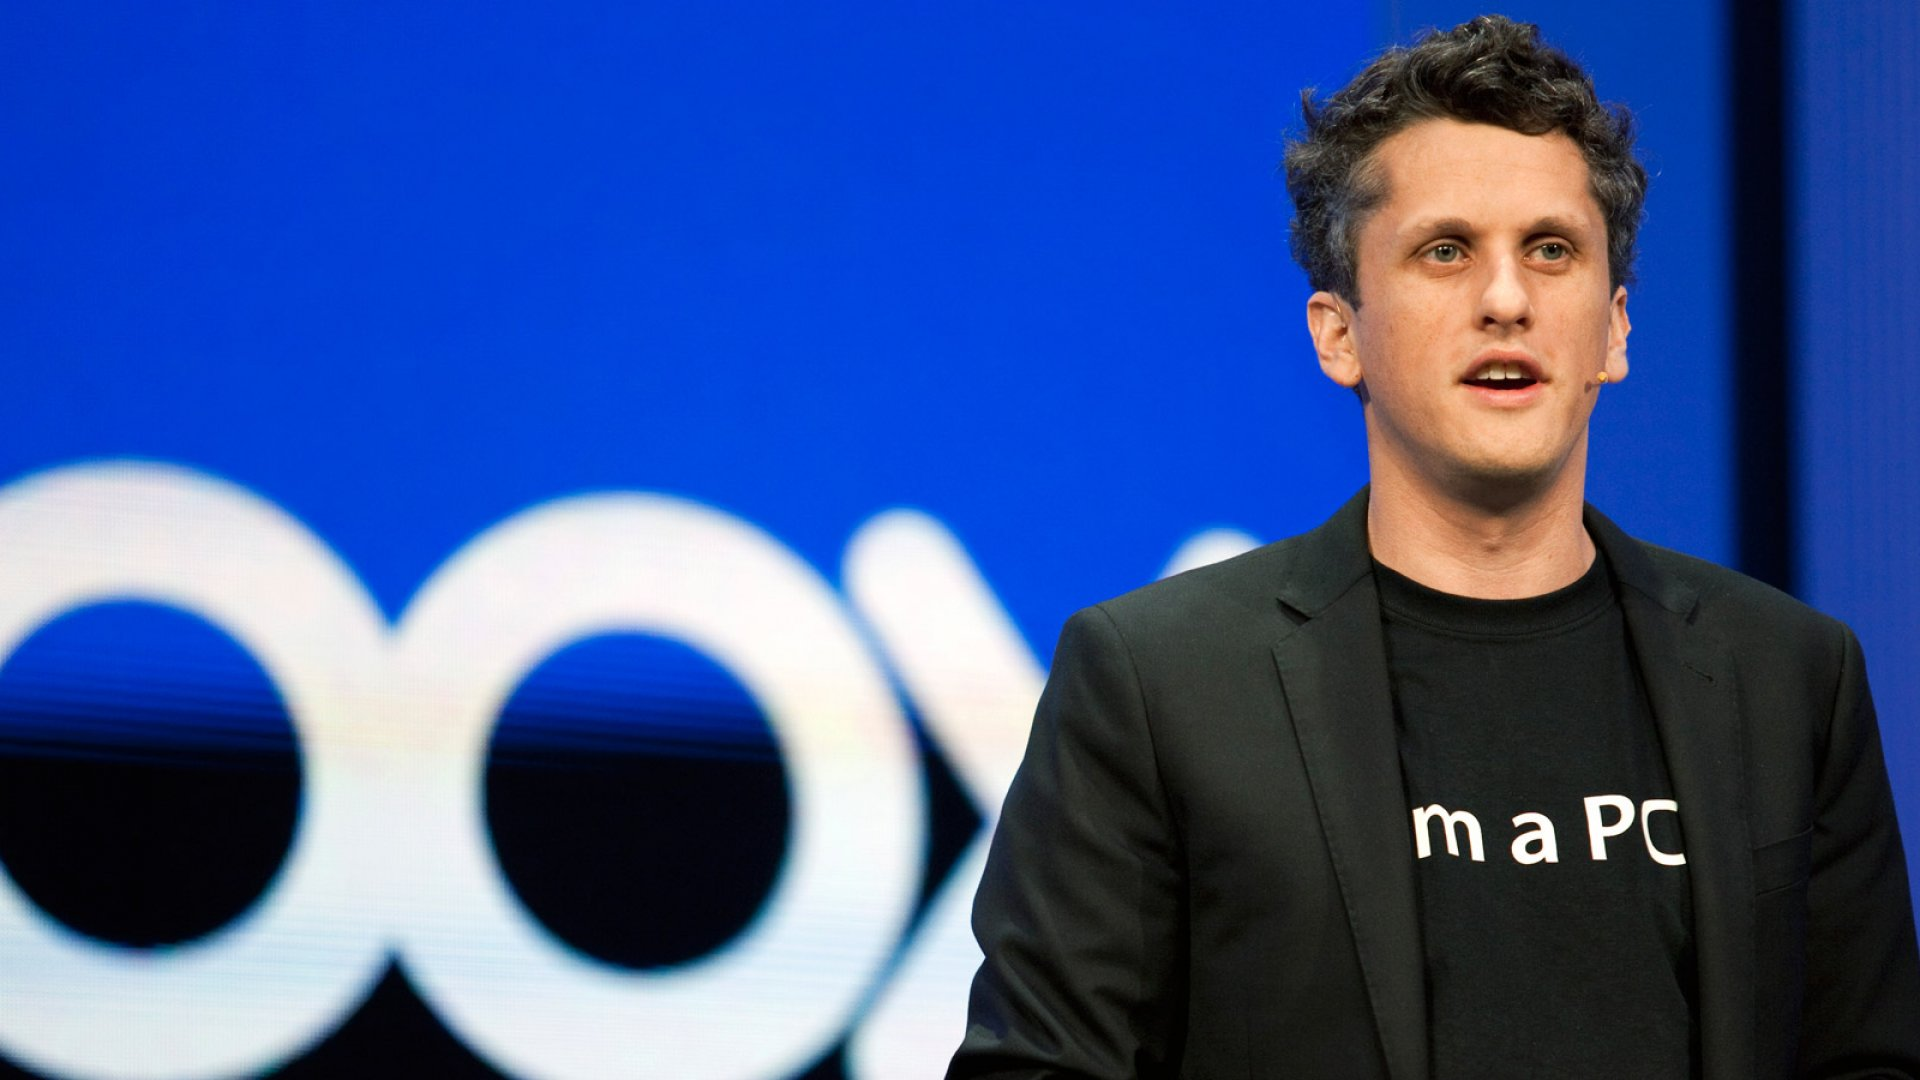 Box's Aaron Levie on How to Land a Huge Customer